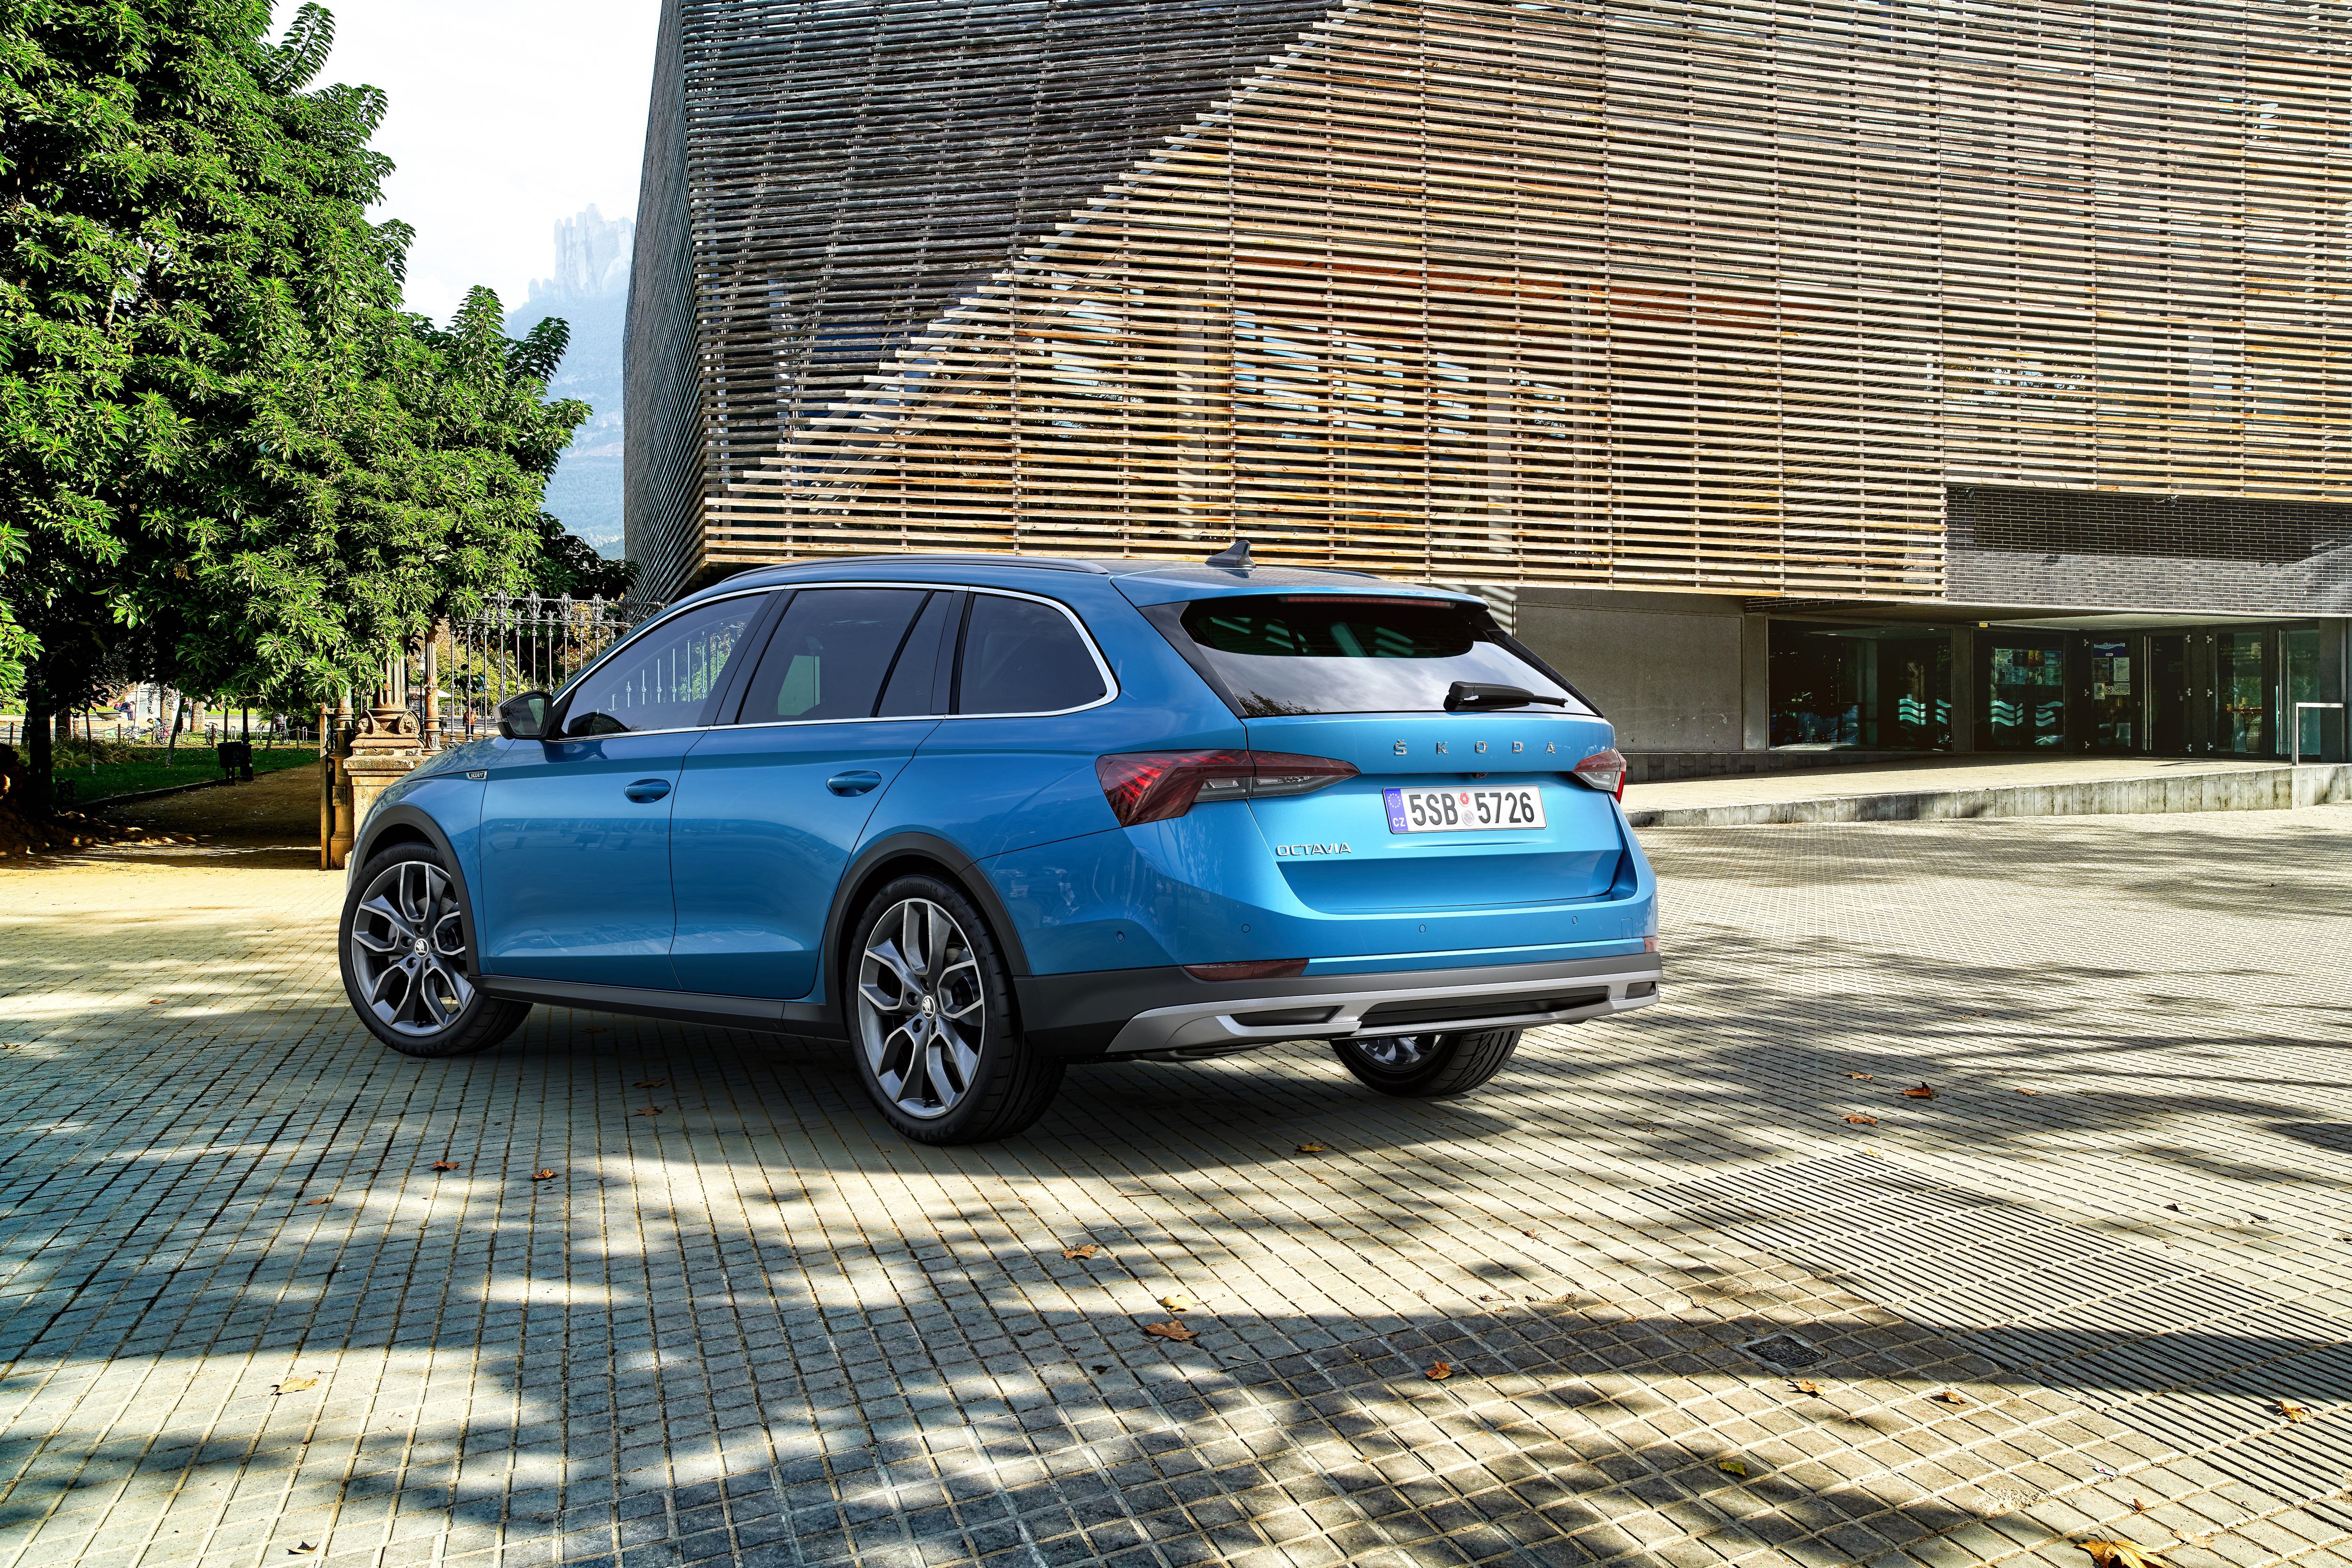 Lifestyle estate in its 3rd generation: The new SKODA OCTAVIA SCOUT - Image 4